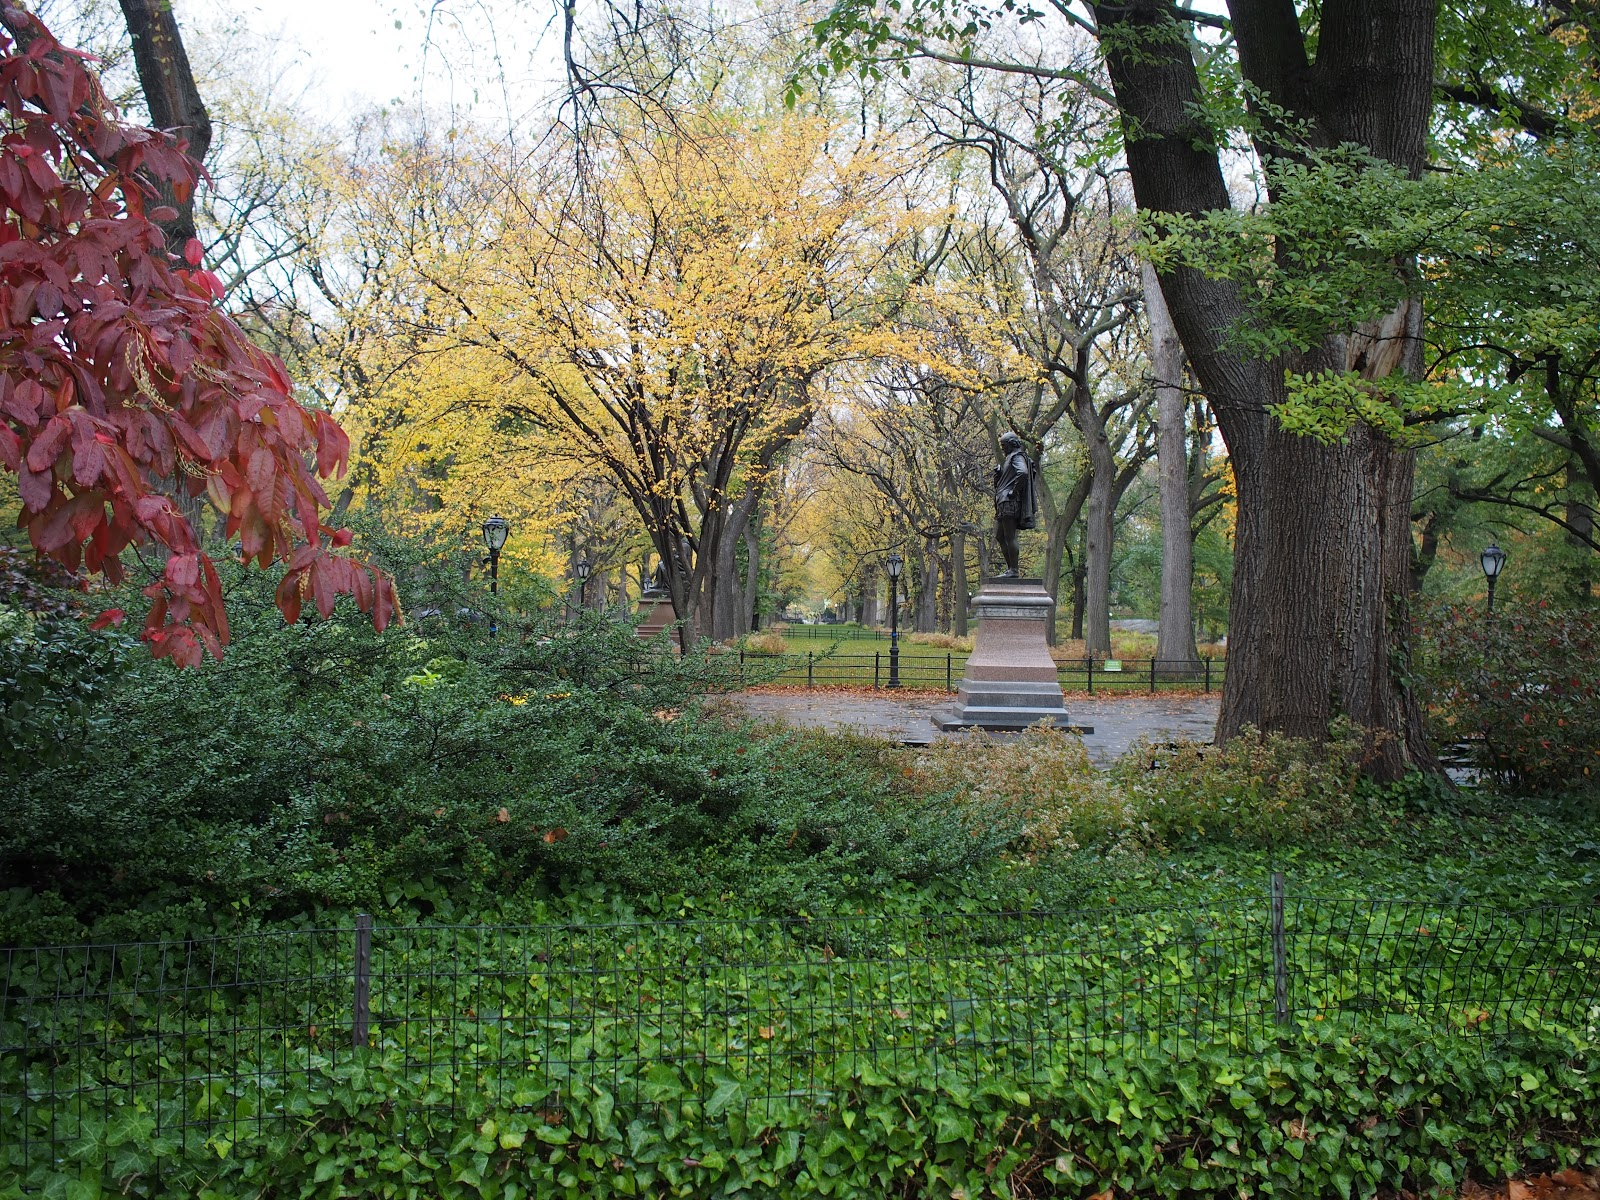 William Shakespeare, #literarywalk #themall #centralpark #nyc #fall #fallfoliage #rainyday 2014